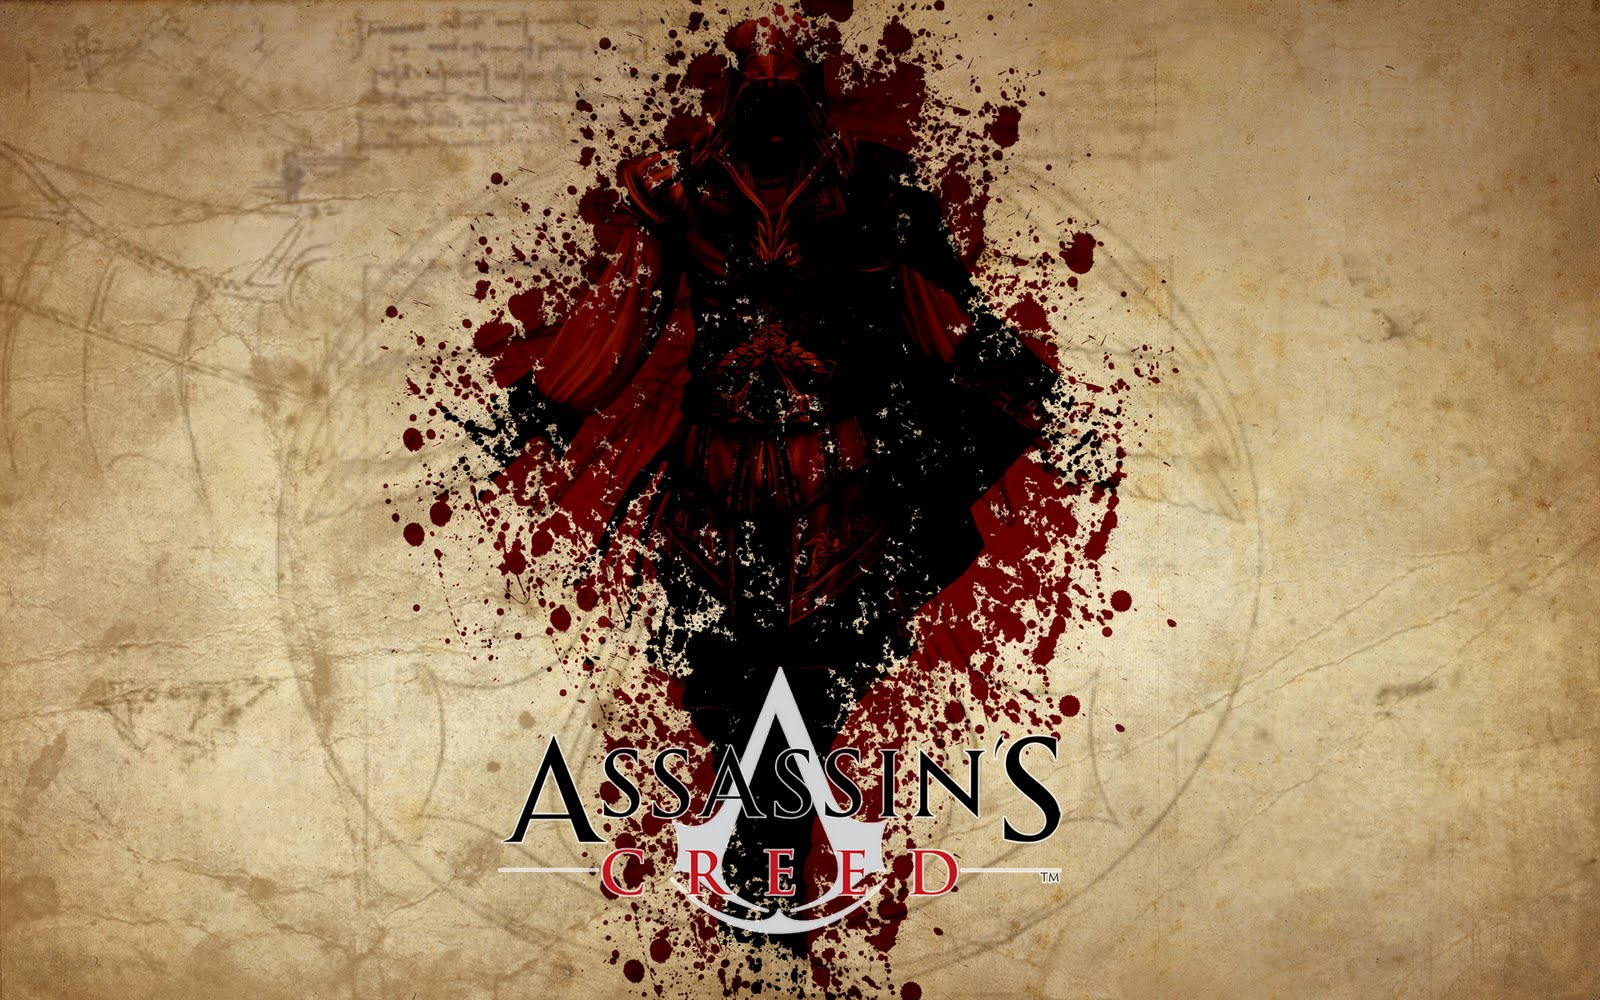 http://1.bp.blogspot.com/-uvoTrhxM-yw/UP_UDseiGLI/AAAAAAAAGLU/7PBaXzGuZSQ/s1600/Assassins+Wallpapes+hd+16.jpg